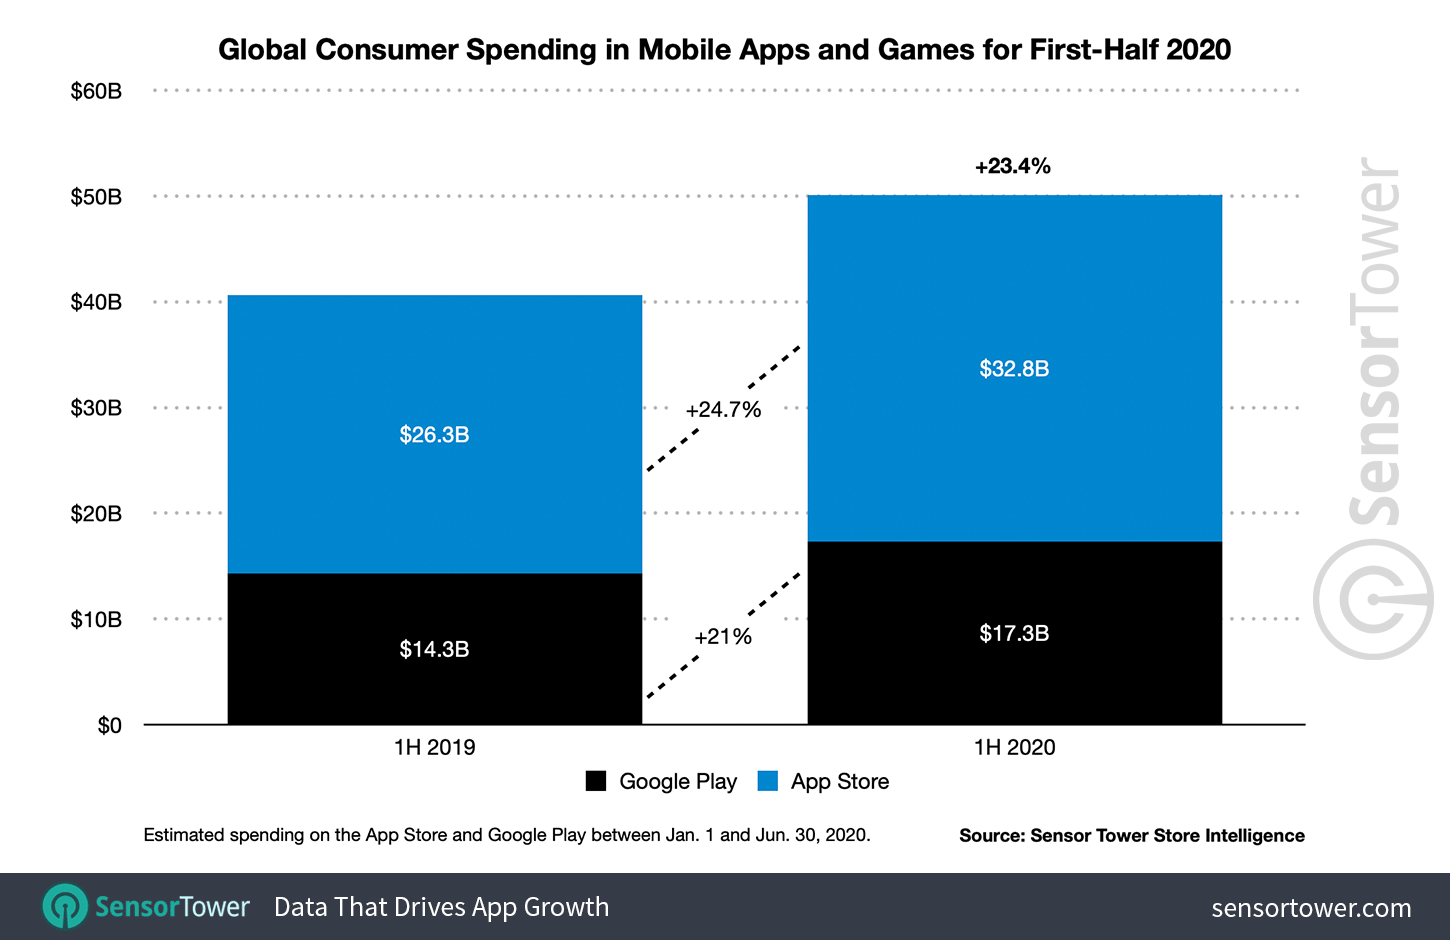 global consumer spending in mobile apps and games for first half 2020